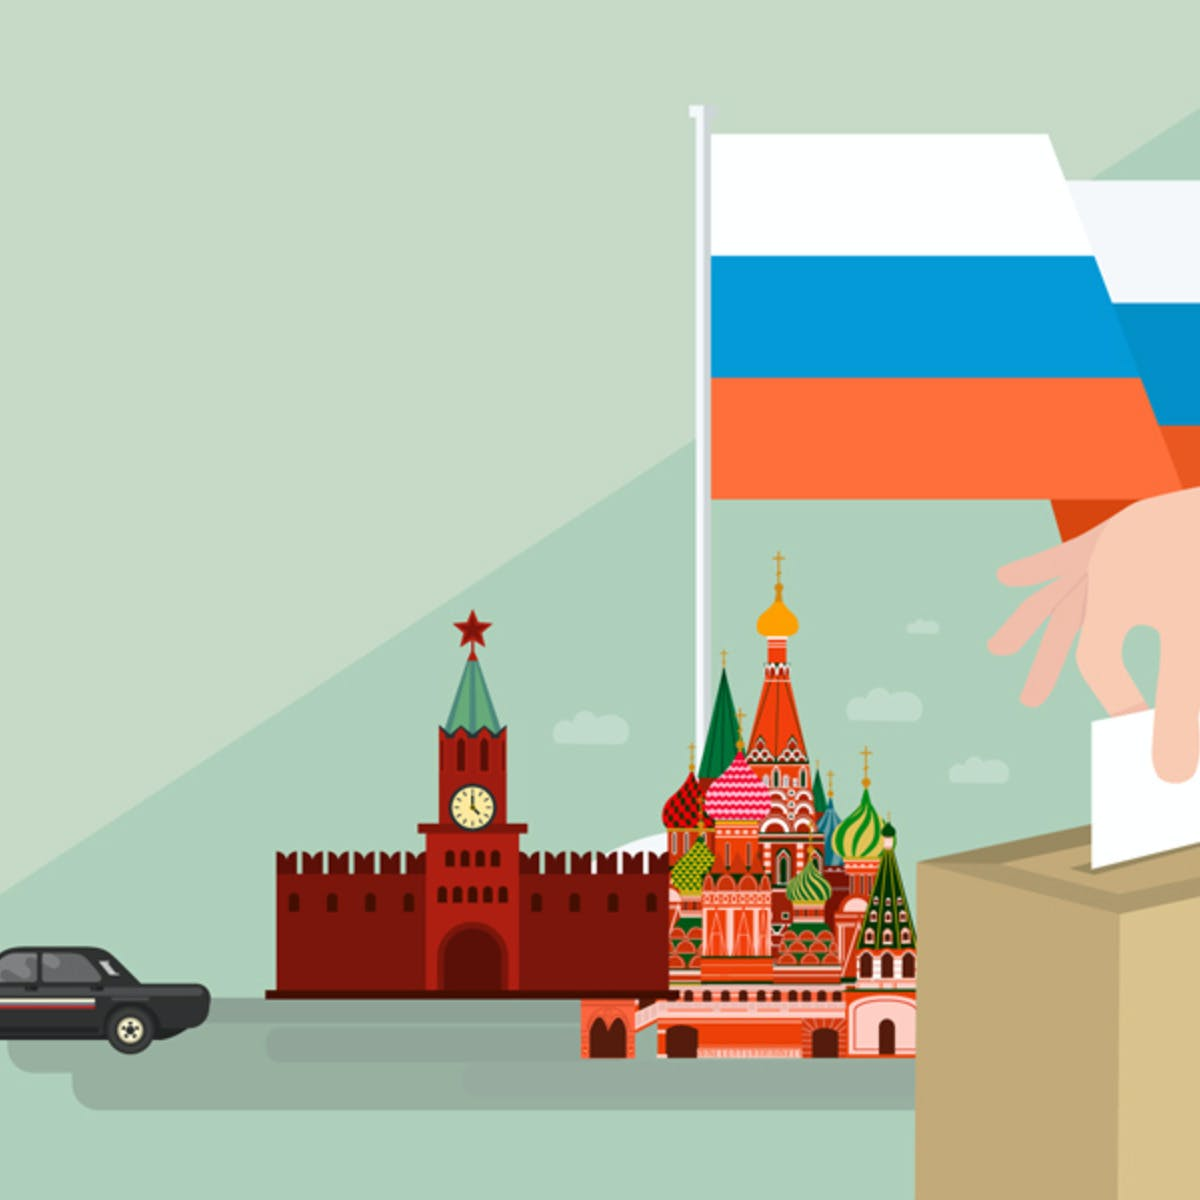 Political Governance and Public Policy in Russia